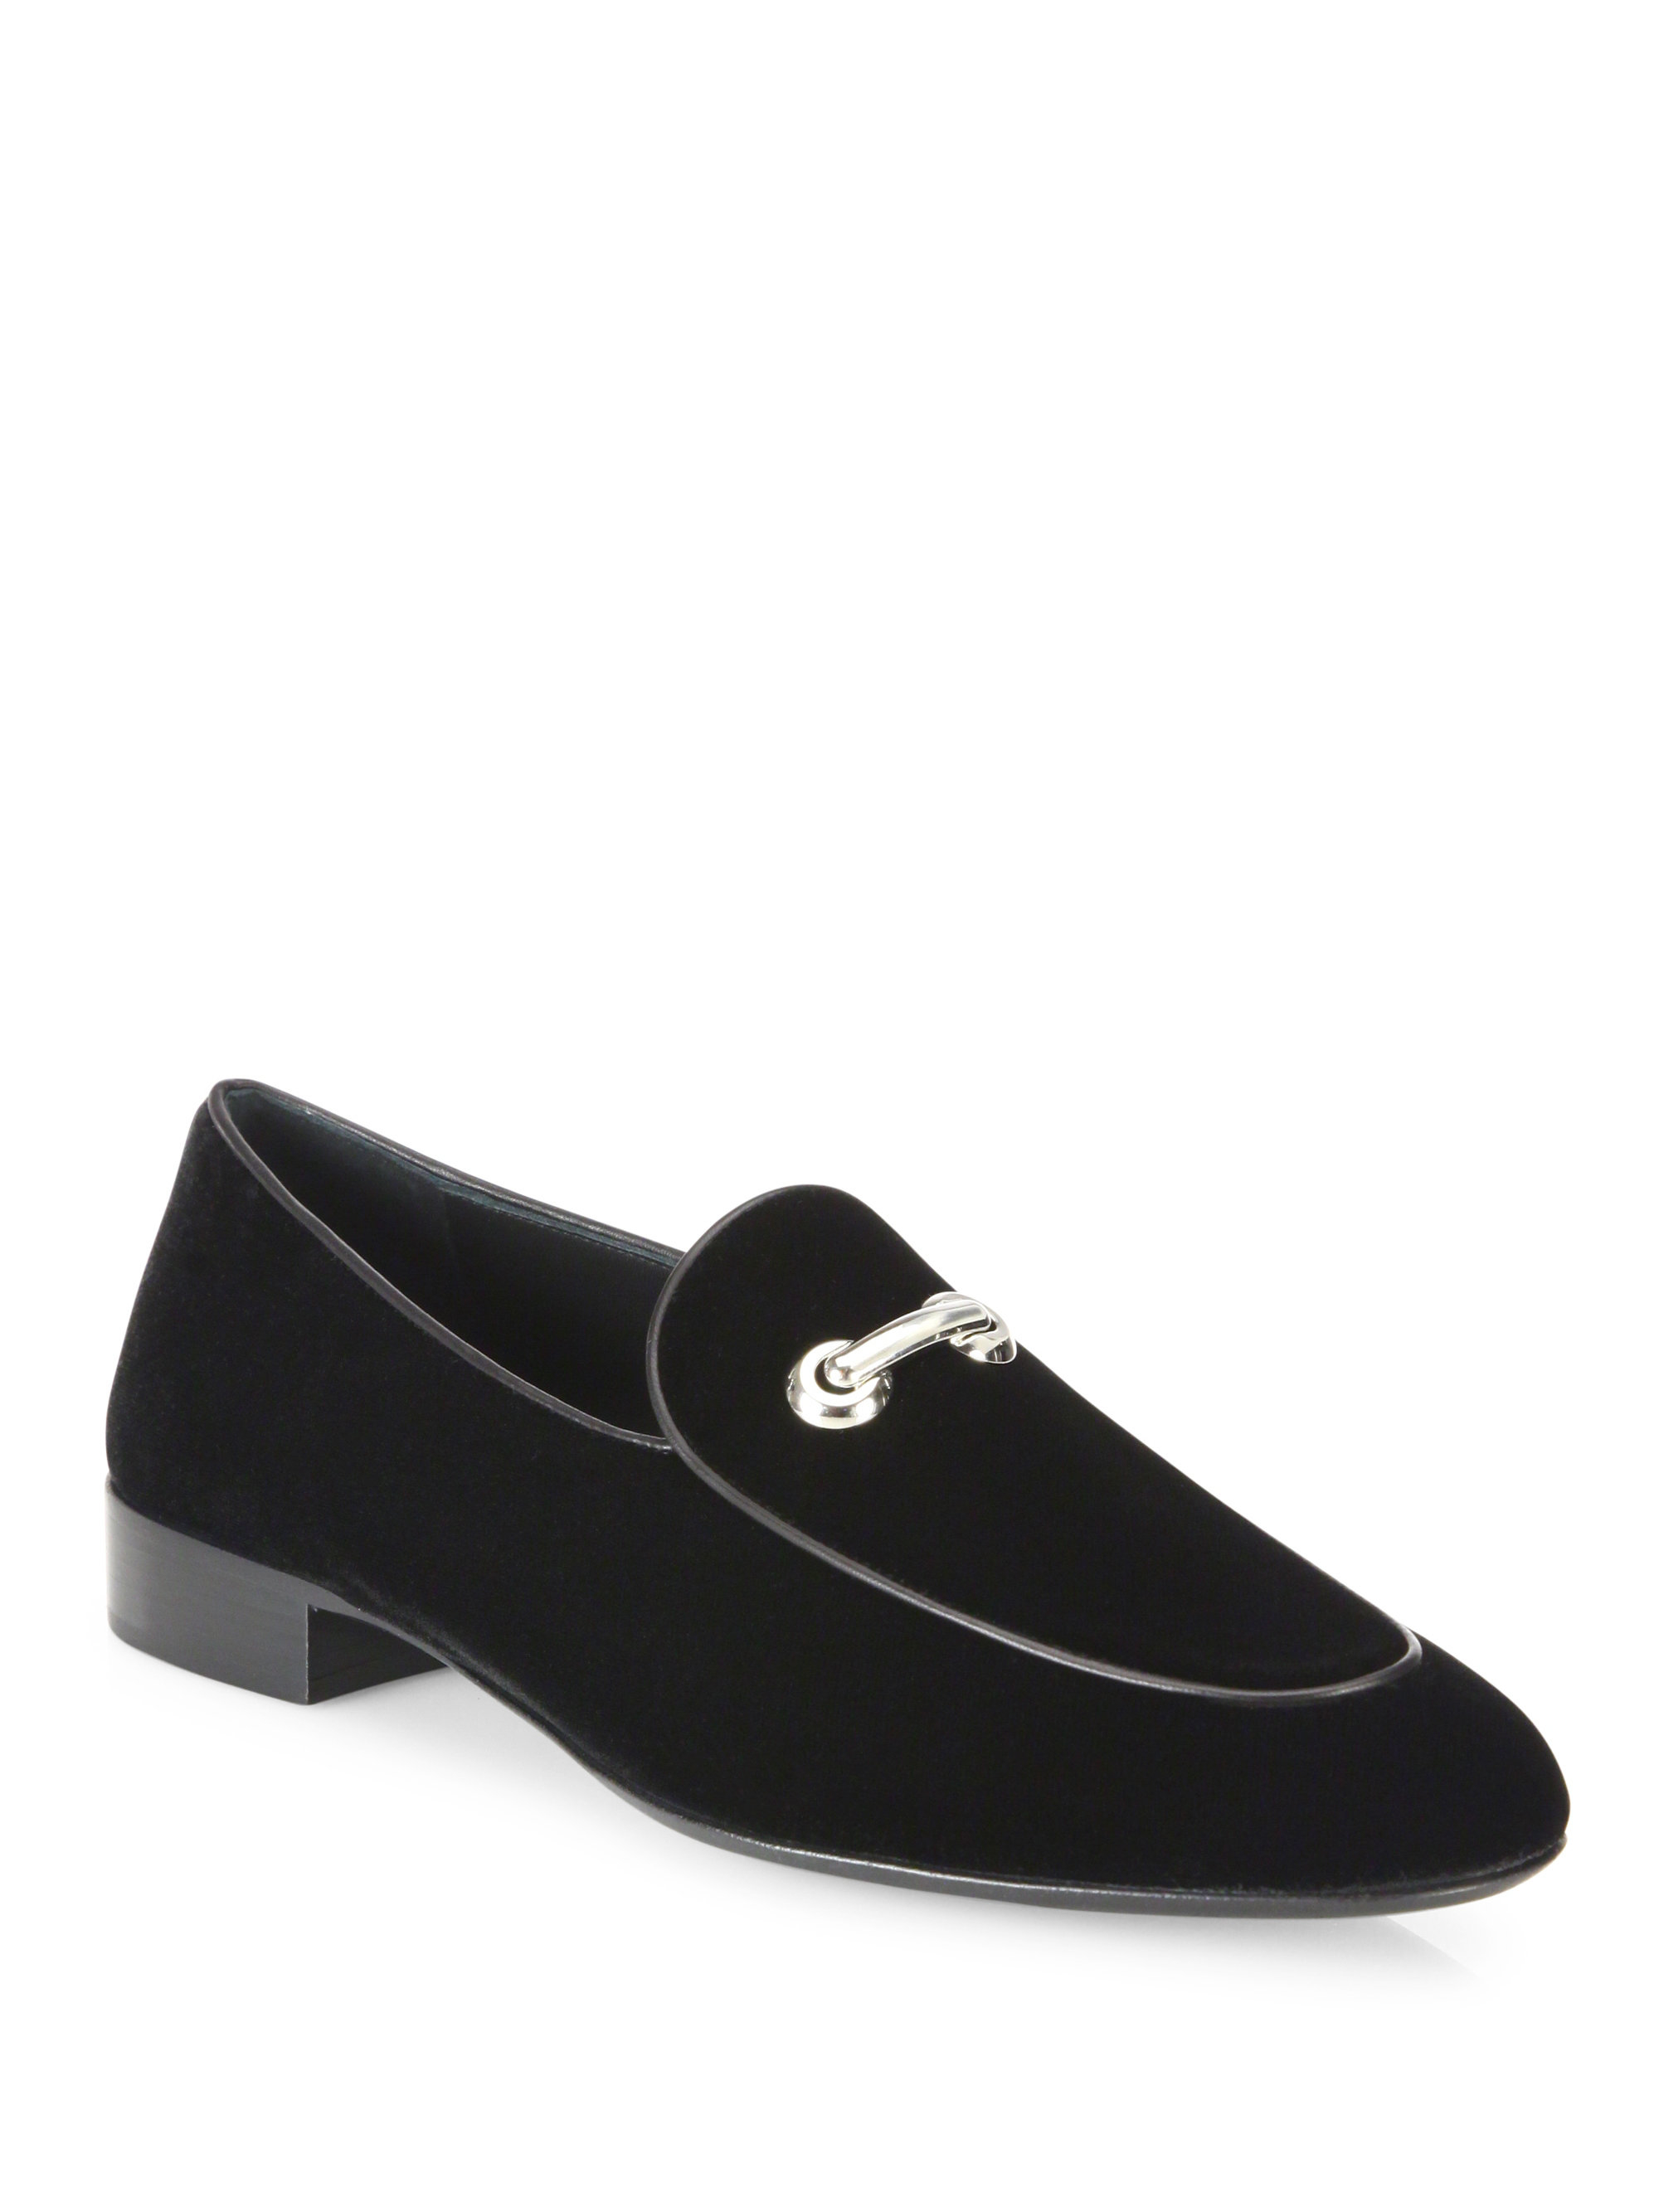 giuseppe zanotti velvet slip on shoes for lyst